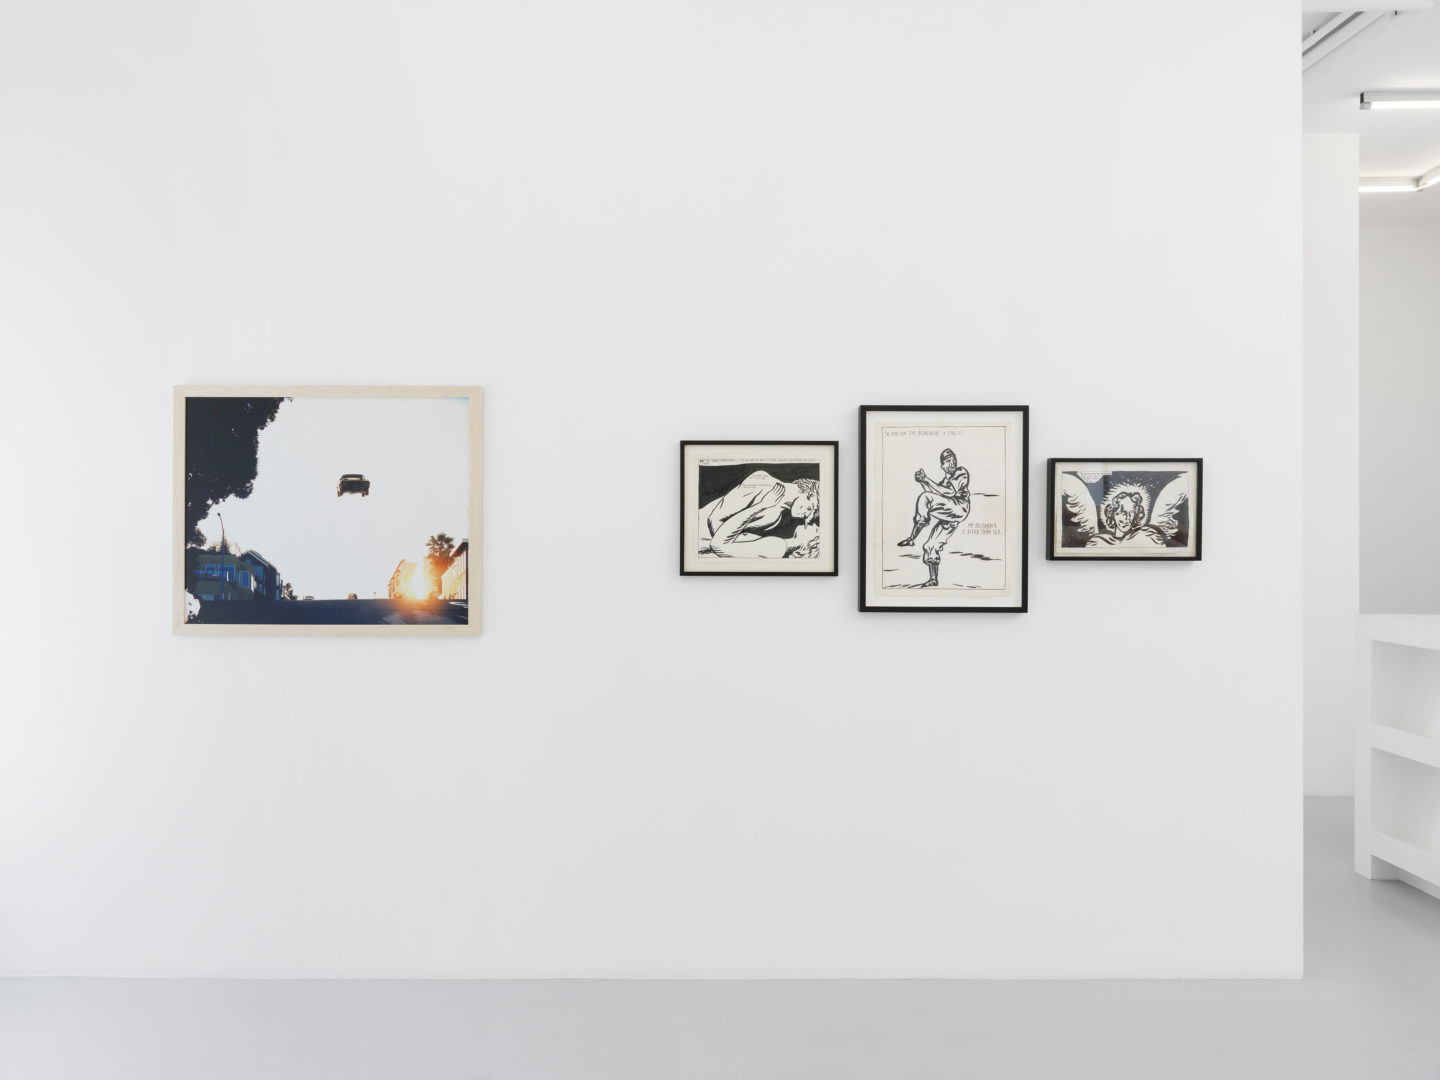 Exhibition View Matthew Porter and Raymond Pettibon «Look West, Young Man!» at Galerie Xippas, Geneva / Photo: Annik Wetter / Courtesy: Galerie Xippas